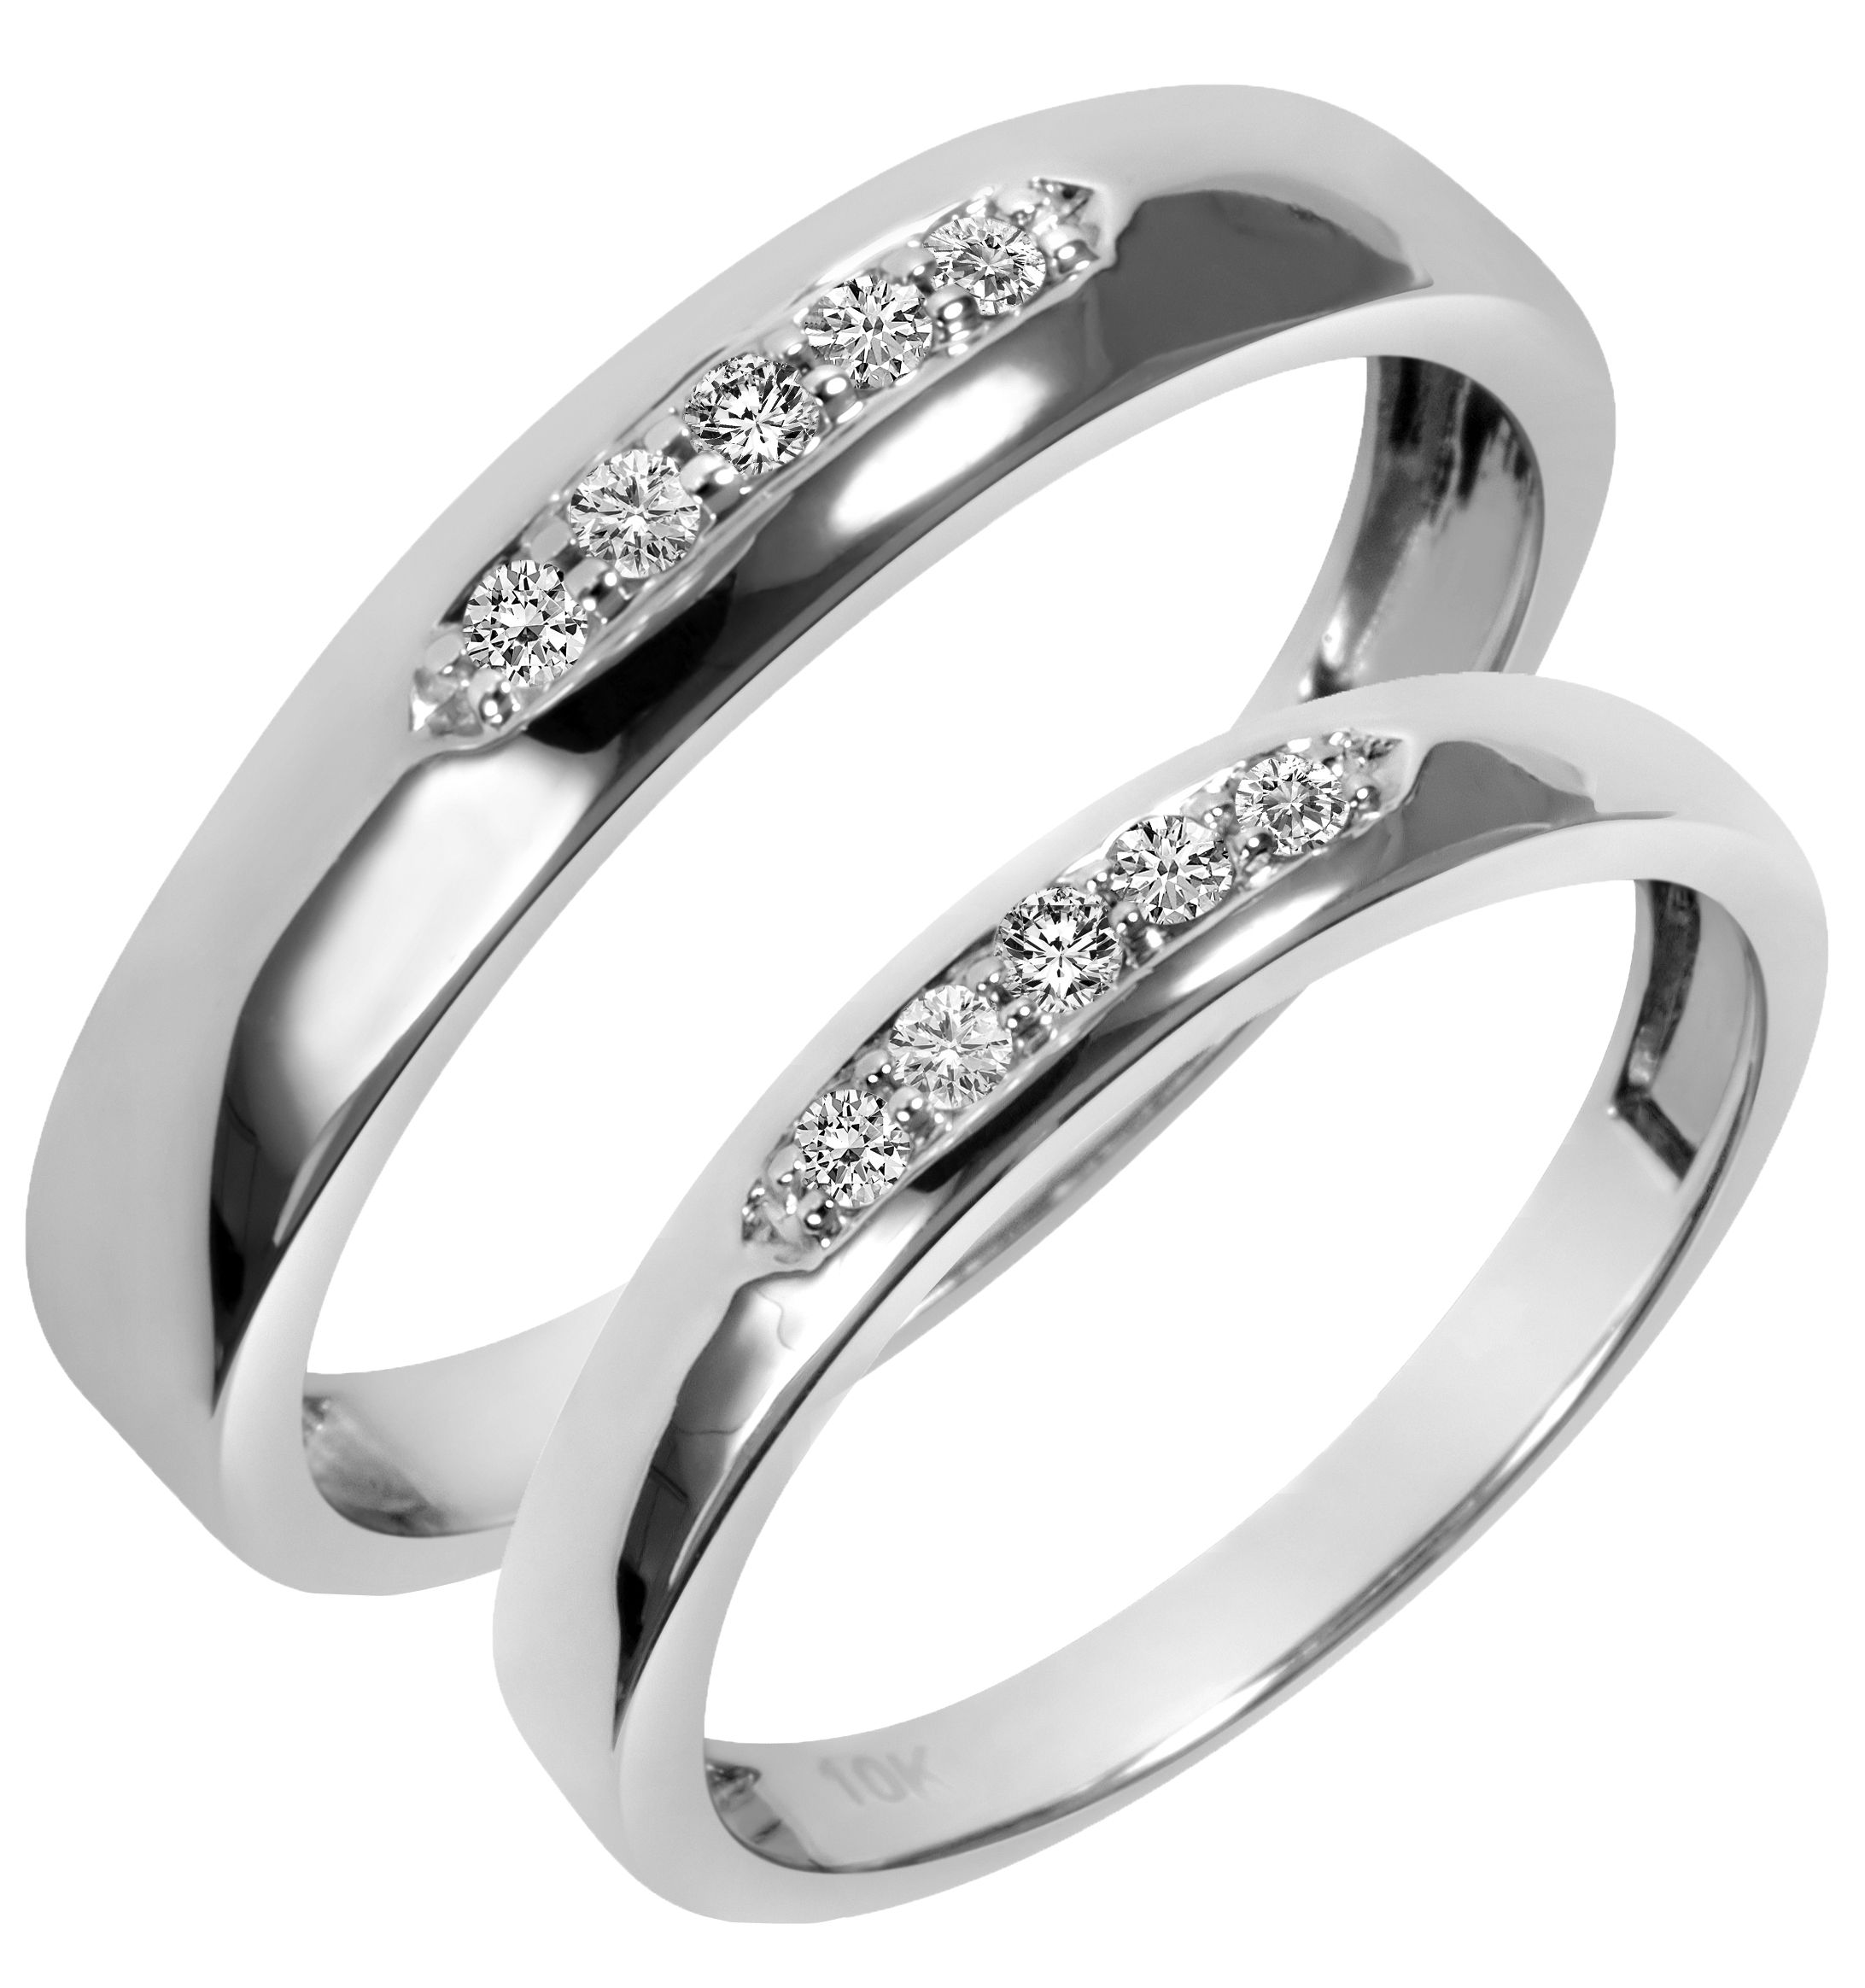 1 5 Carat T W Diamond His And Hers Wedding Band Set 10K White